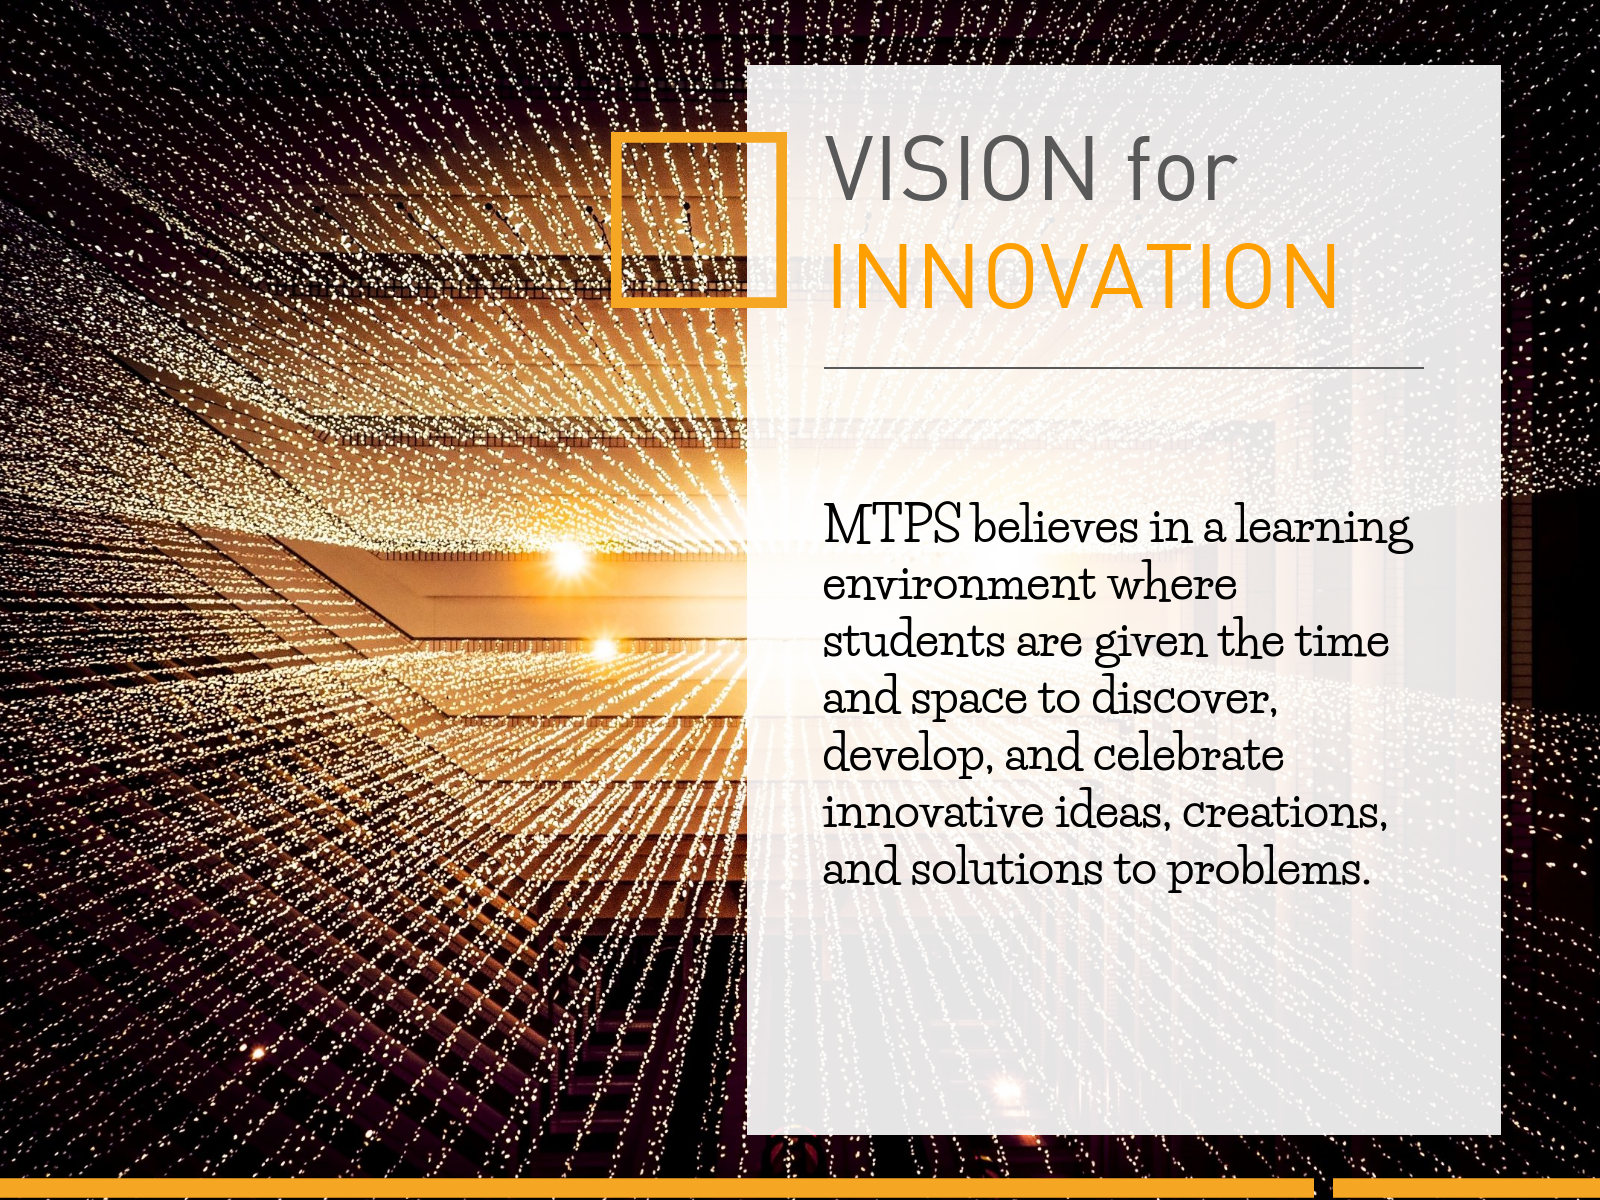 Innovation image. Flying towards light image: Vision for Innovation: MTPS believes in a learning environment where students are given the time and space to discover, develop, and celebrate innovative ideas, creations, and solutions to problems.